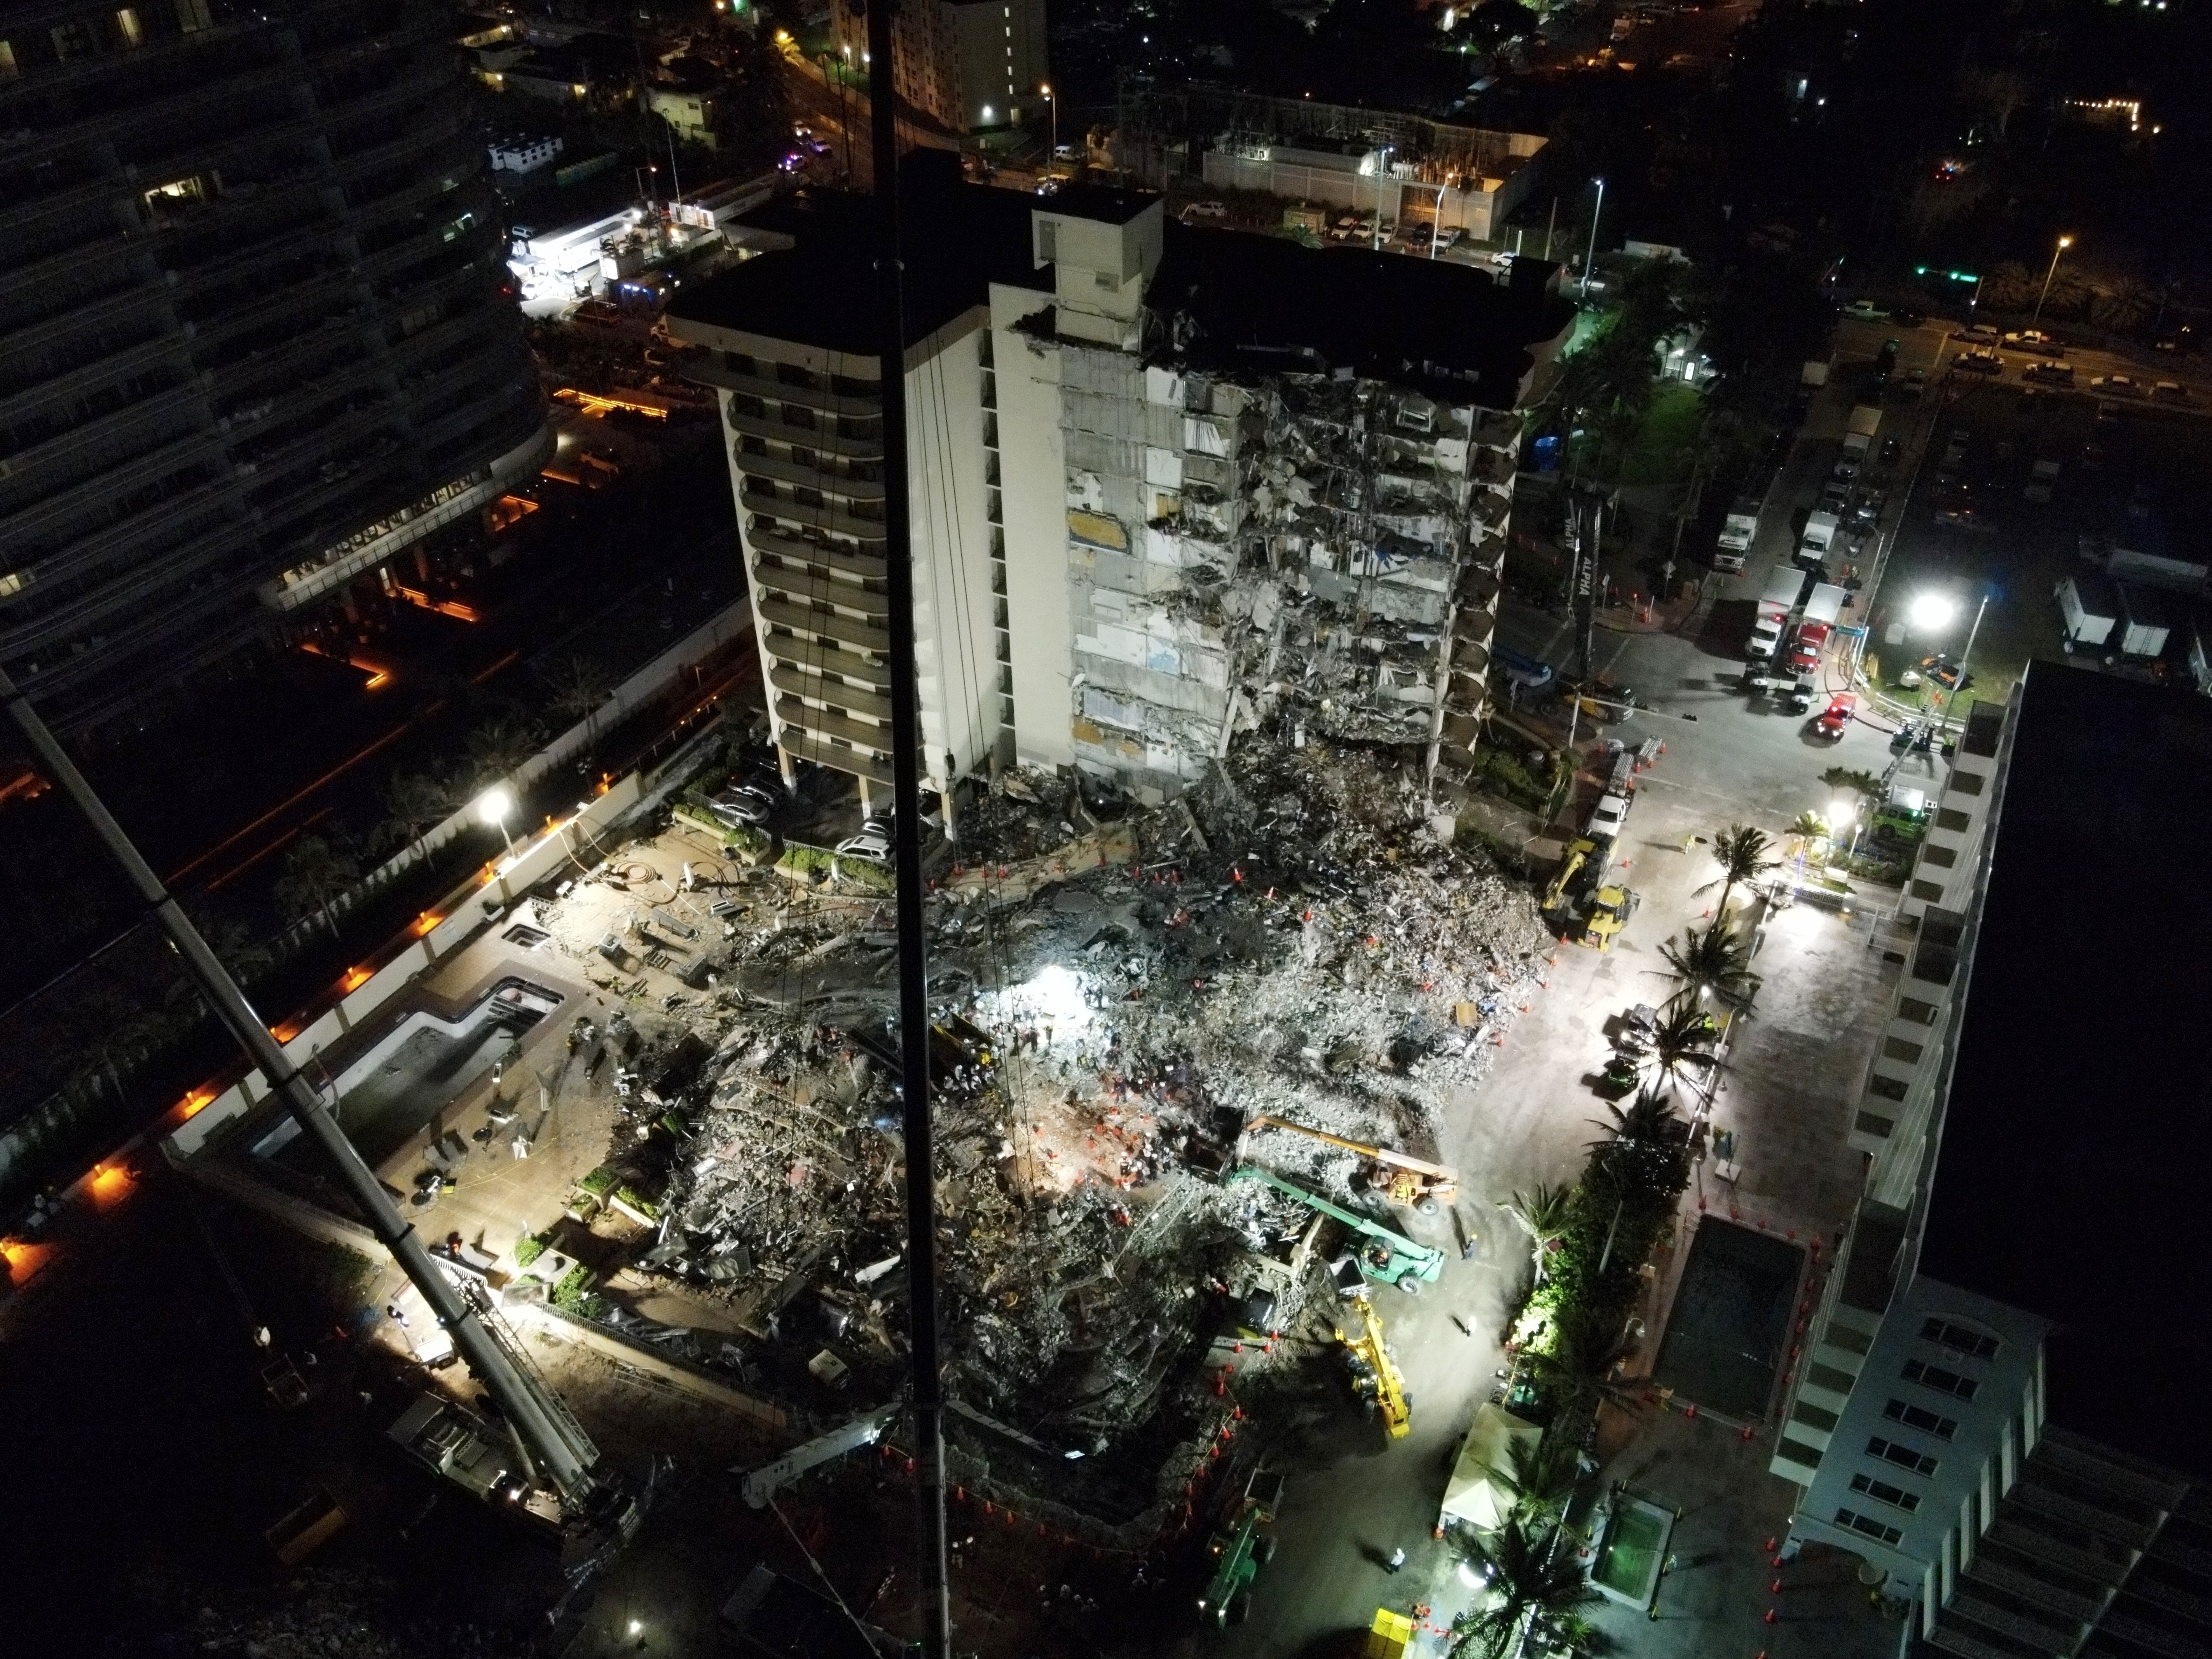 An aerial view of the site during ongoing rescue operations in Surfside.